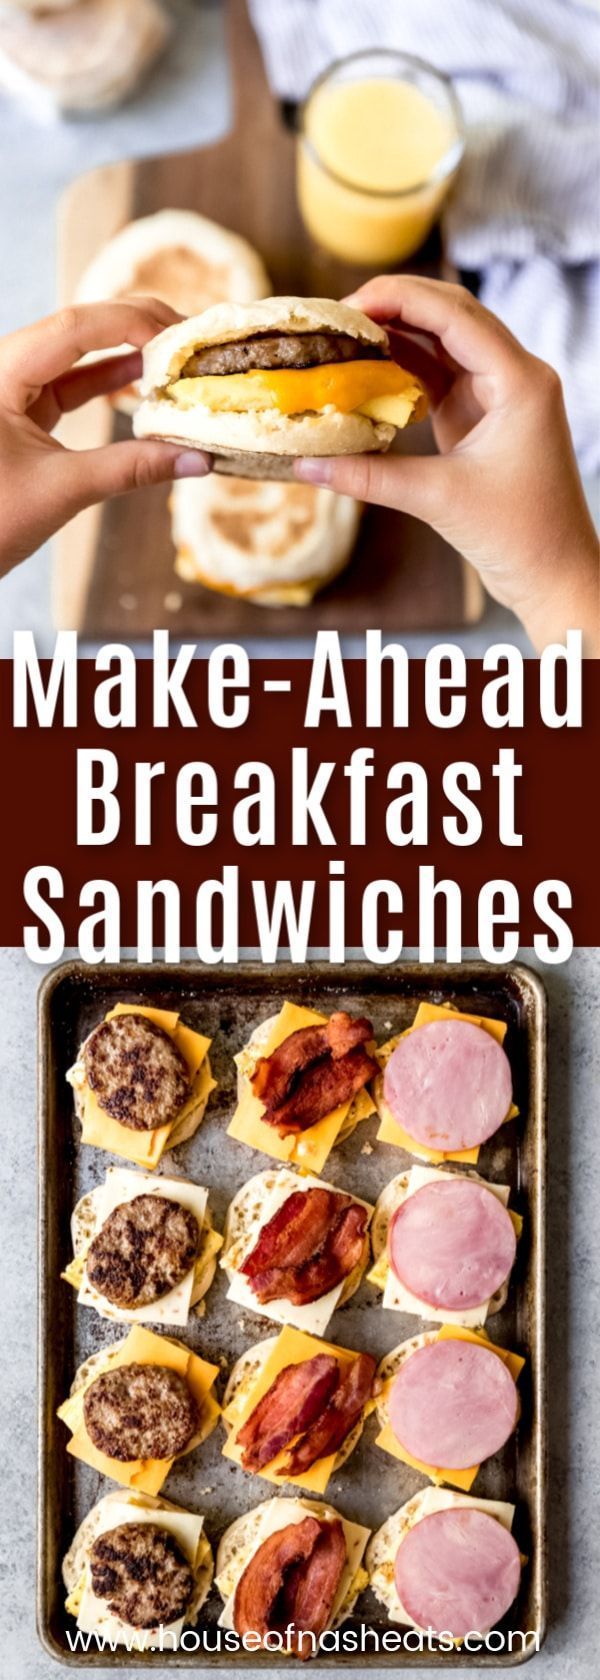 Make-Ahead Breakfast Sandwiches - House of Nash Eats